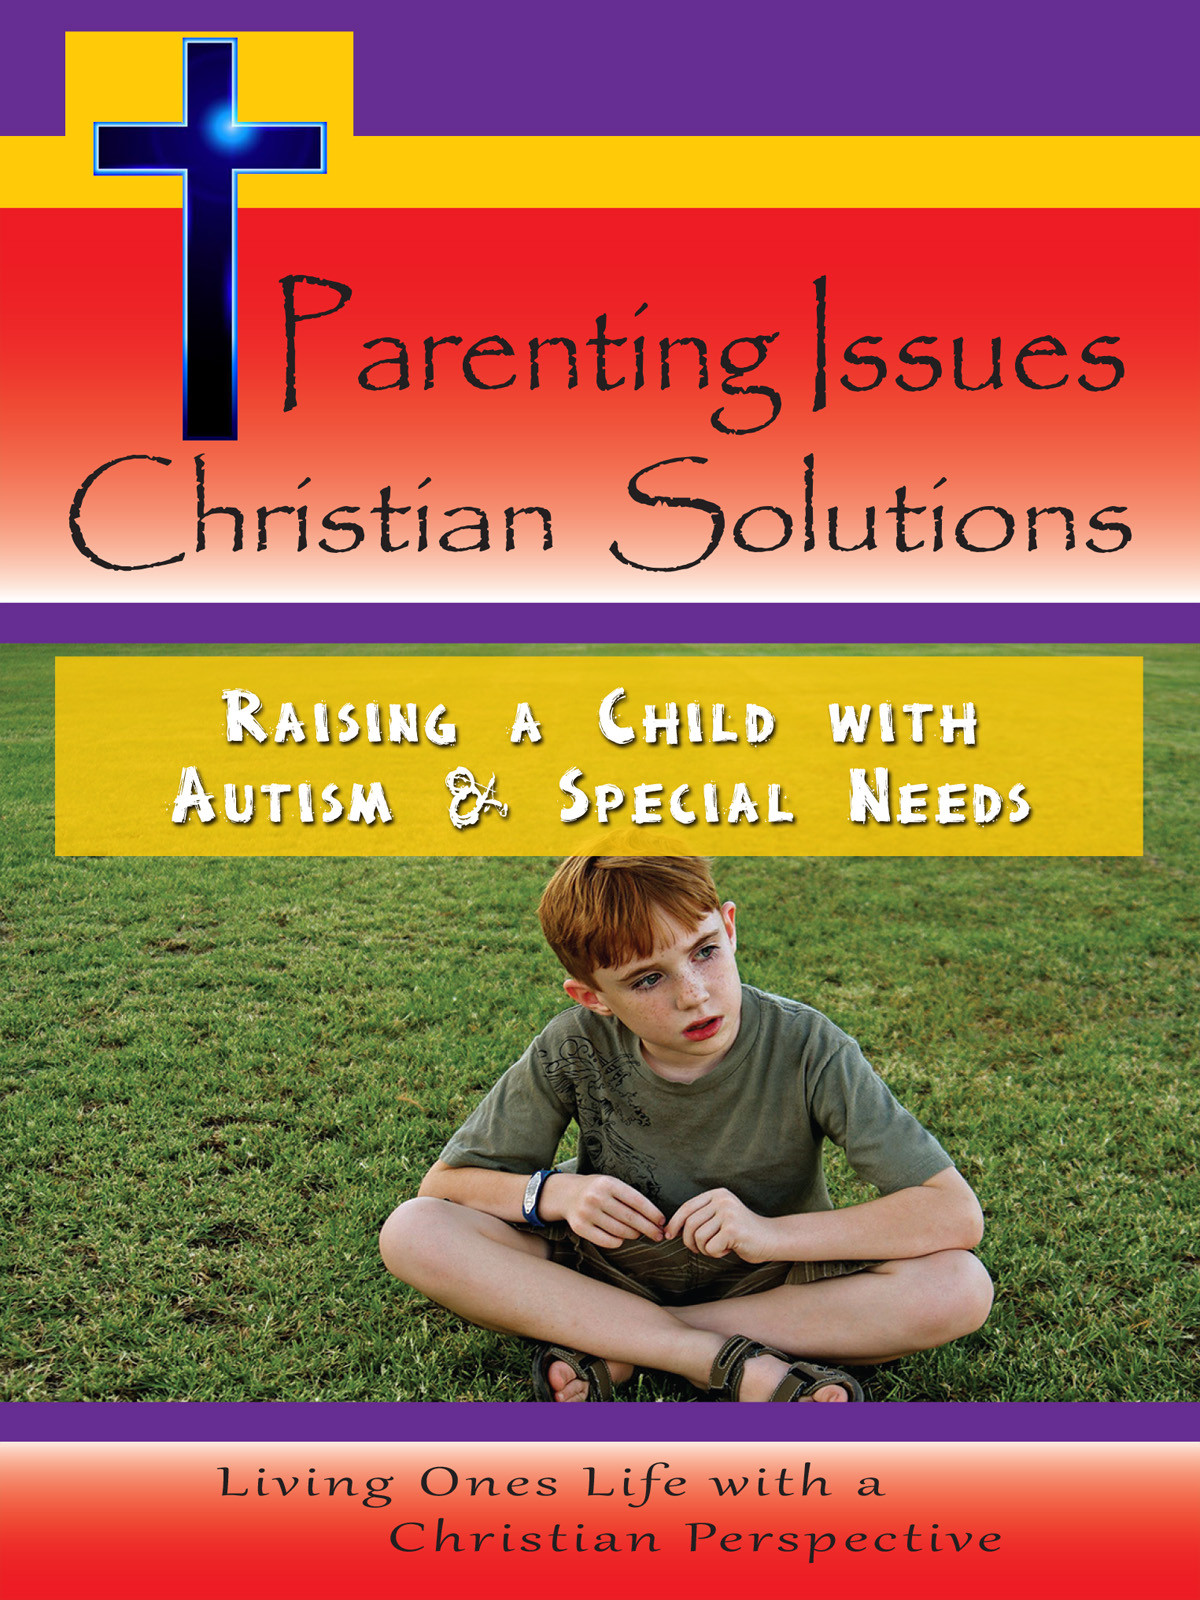 CH10012 - Raising a Child with Autism & Special Needs